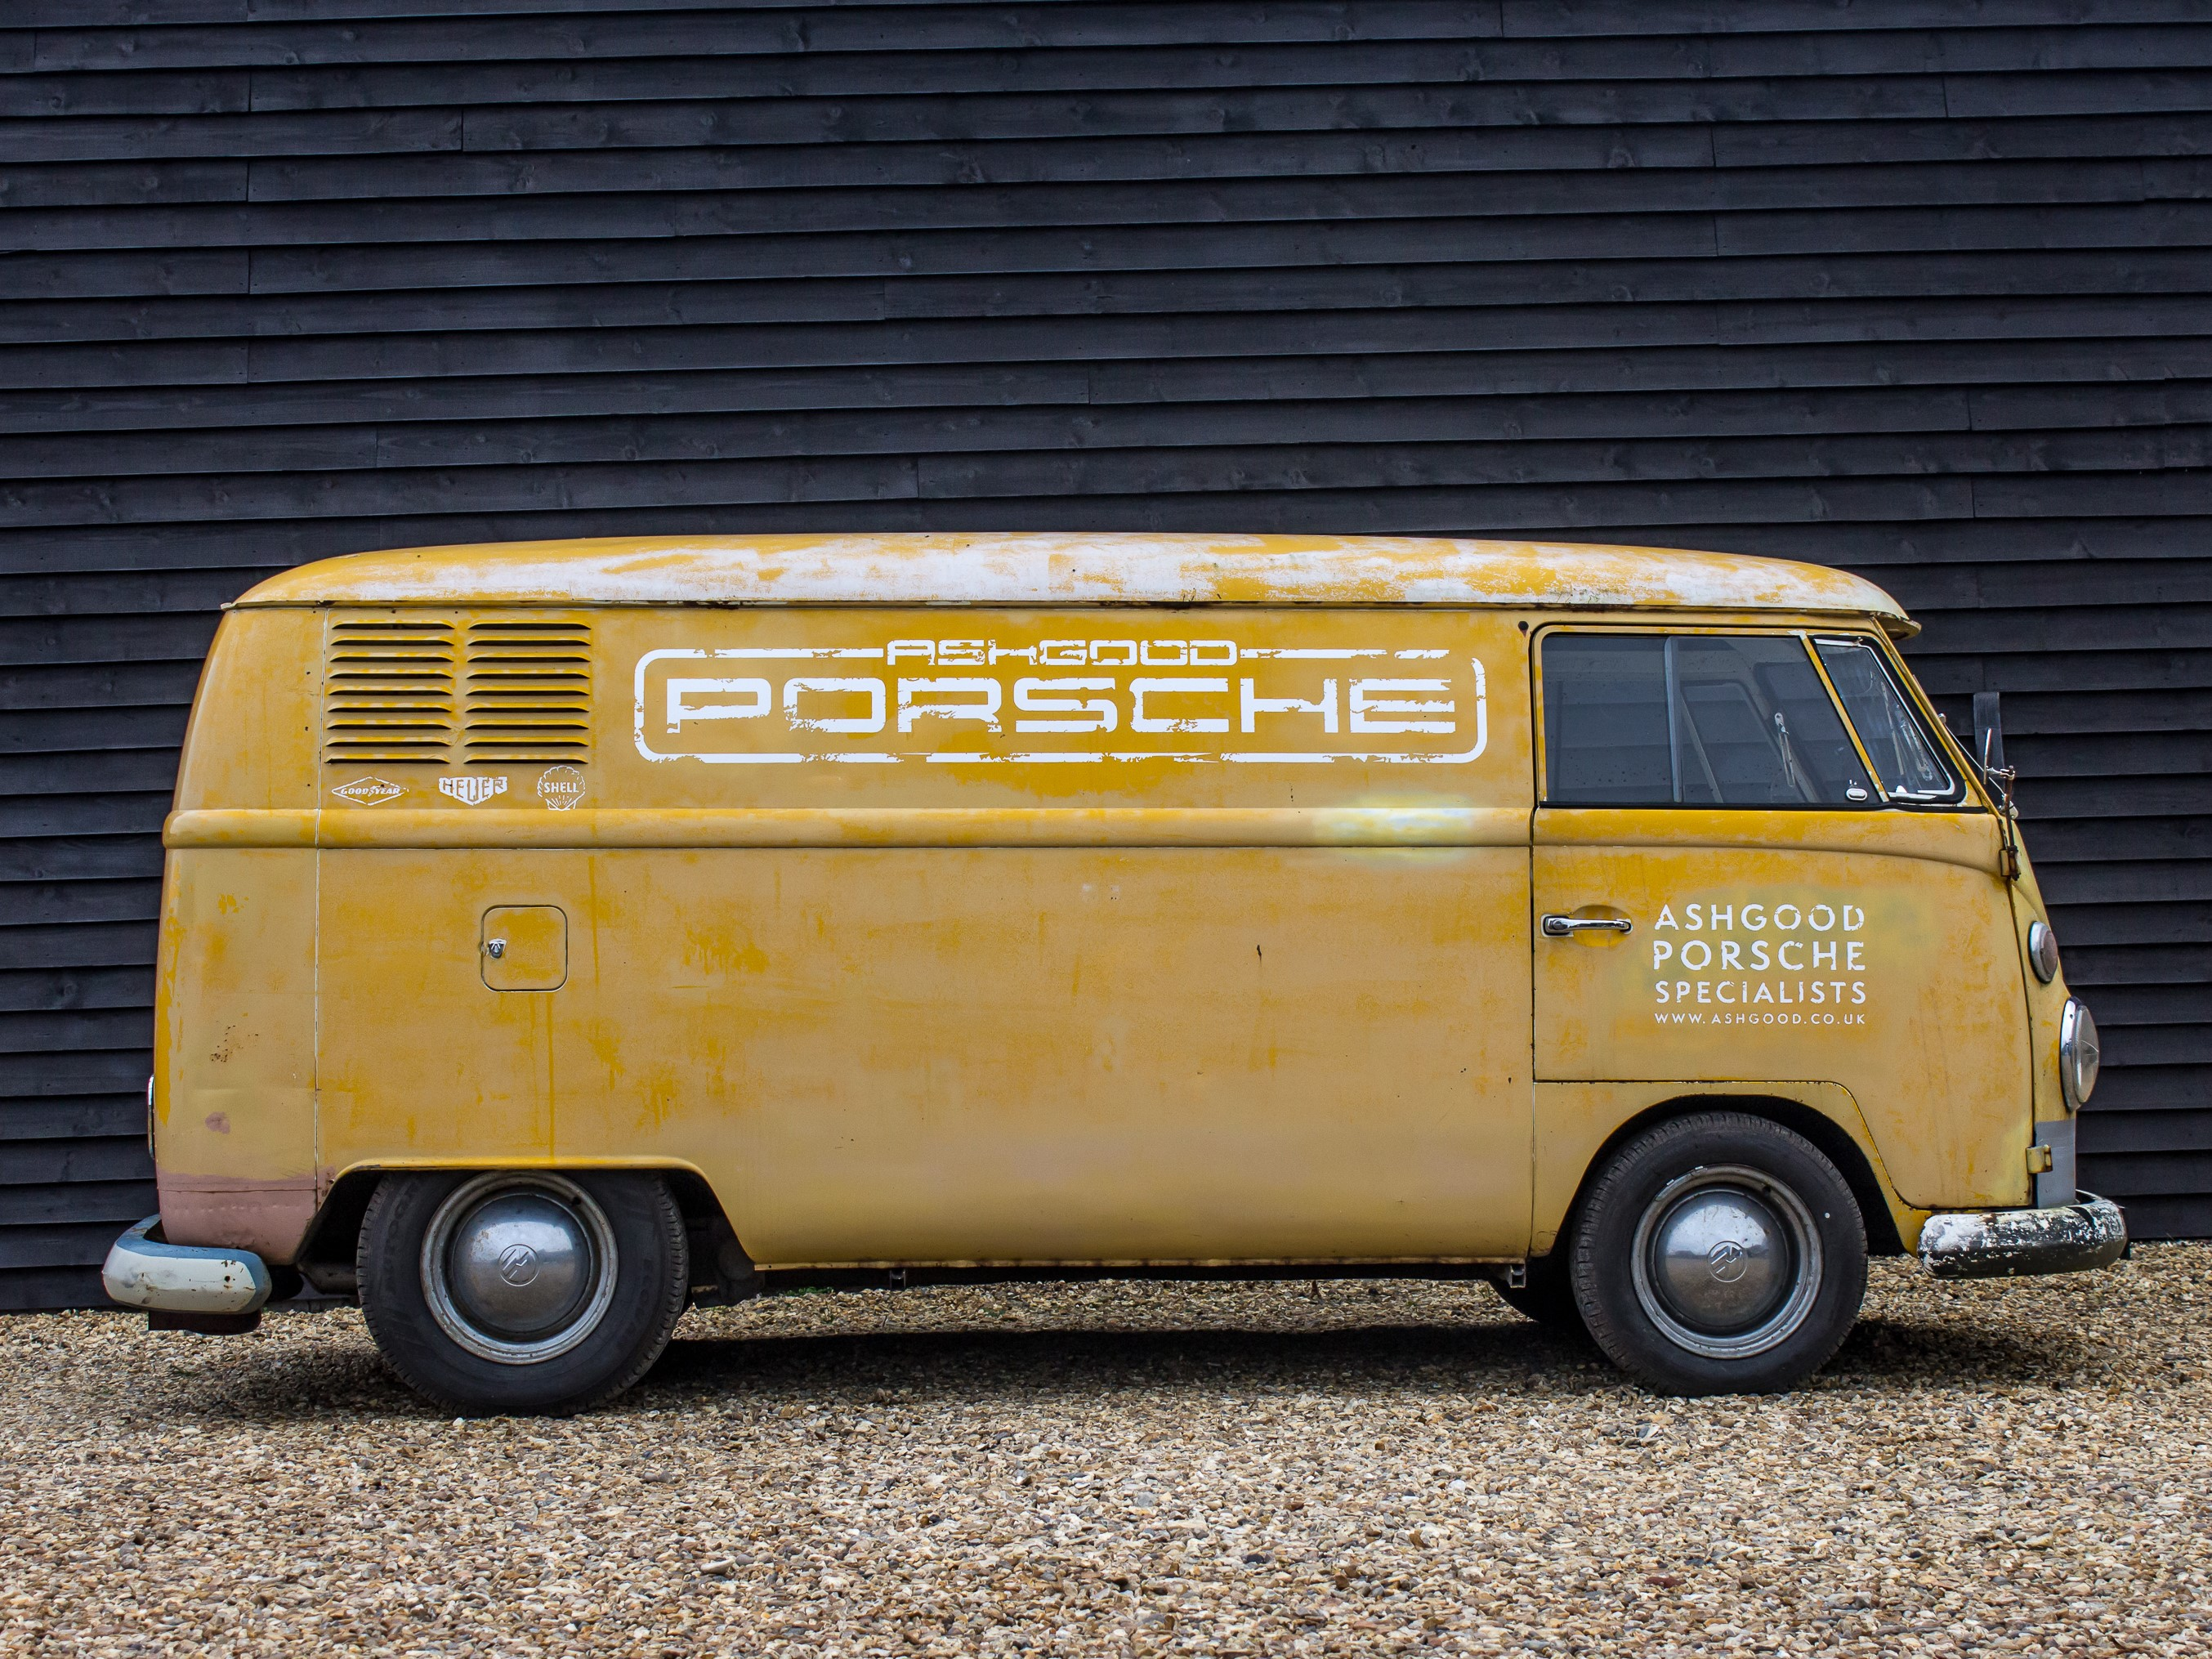 Ashgood Classic and Sportscars take delivery of their new / old delivery van.